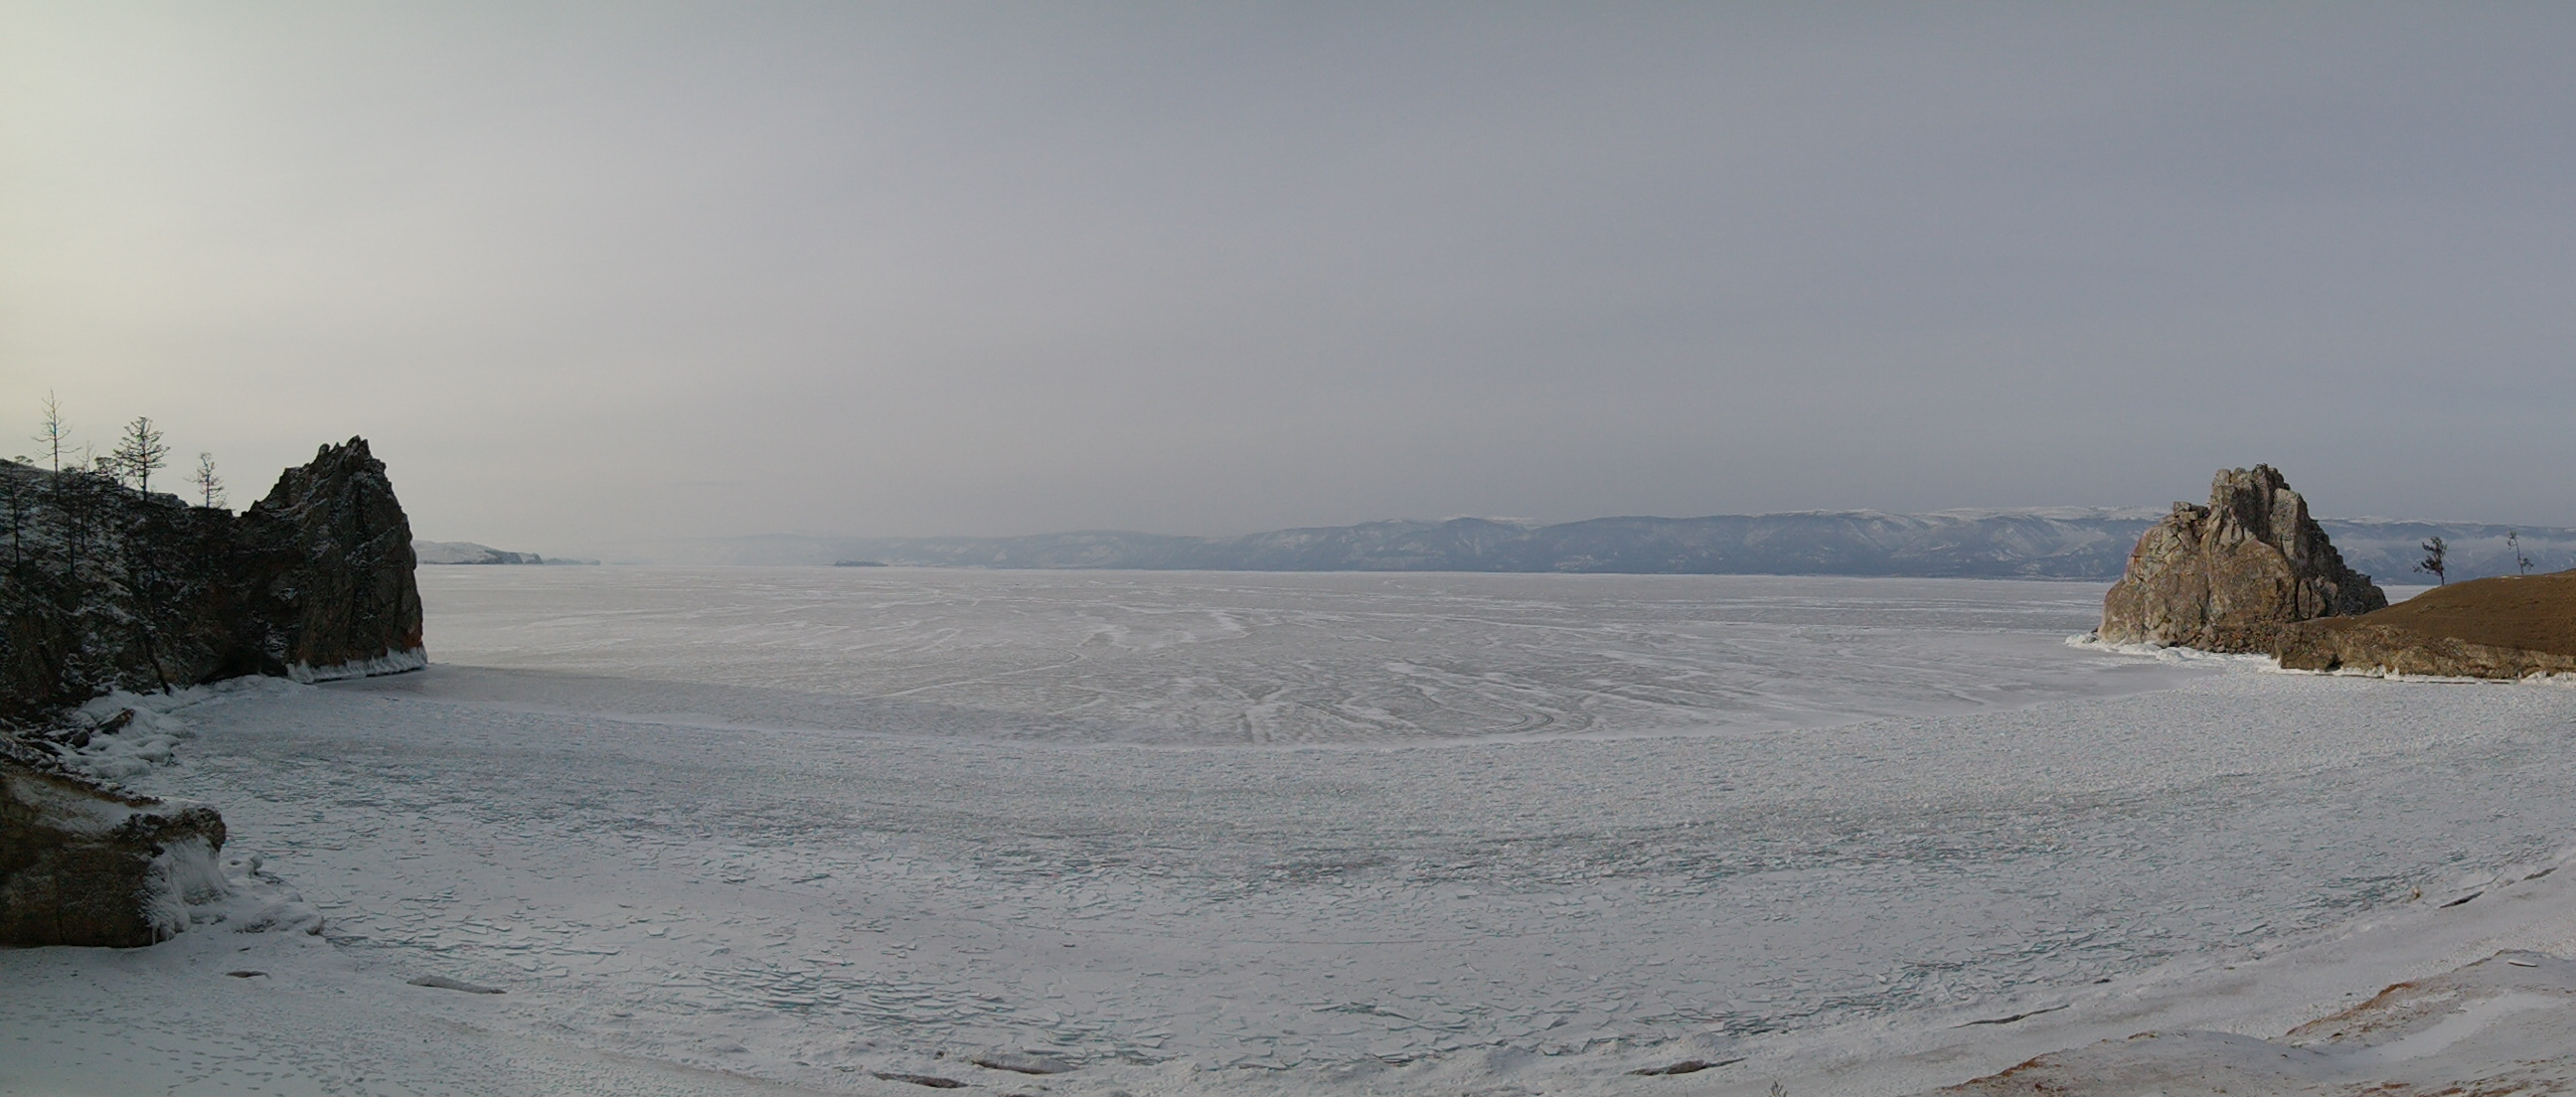 Move Our World Blog Voyage Top 3 Asie Les panoramas de dingue (5) Baikal Lake Frozen Winter